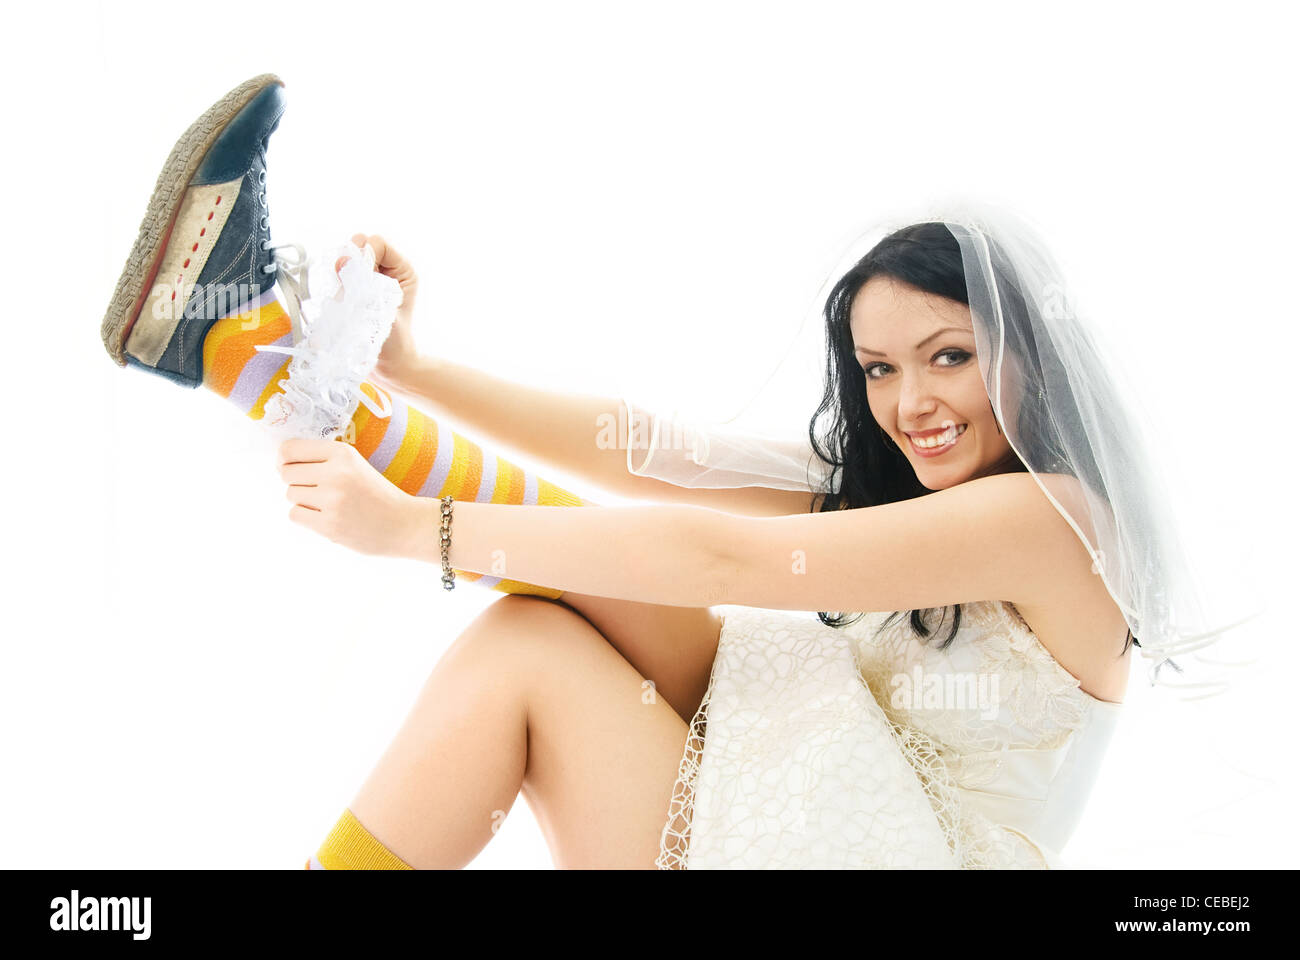 funny young bride wearing sporting shoes puts on a garter and smiles Stock Photo